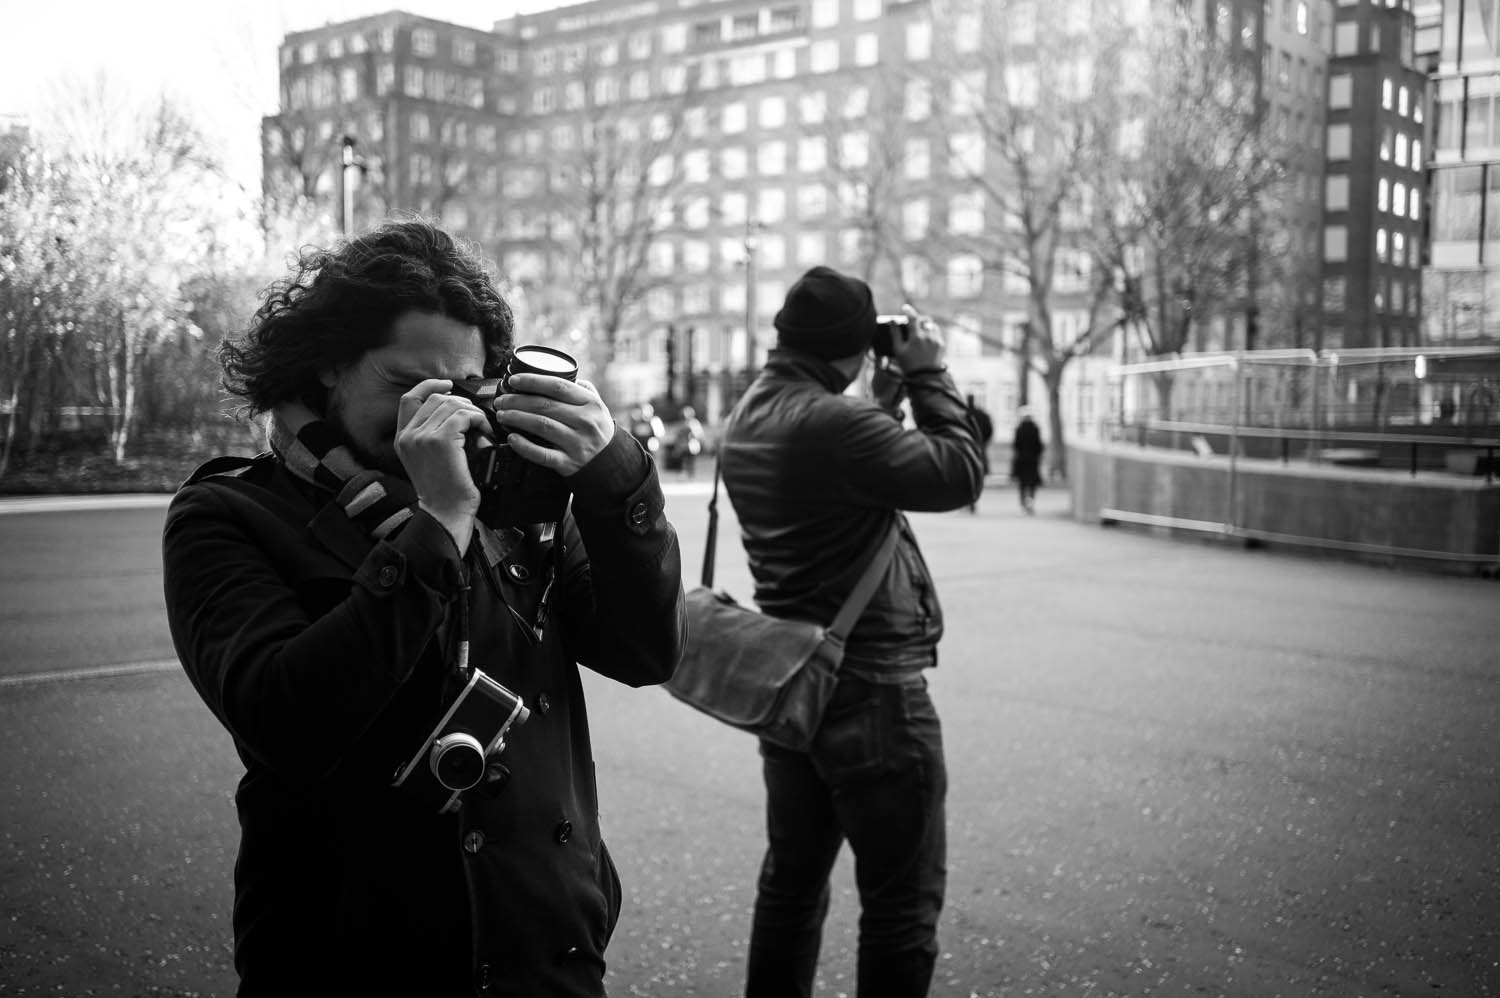 Richard Davies and Martin Smith photograph London with a Bronica-SQ and a Leica M6